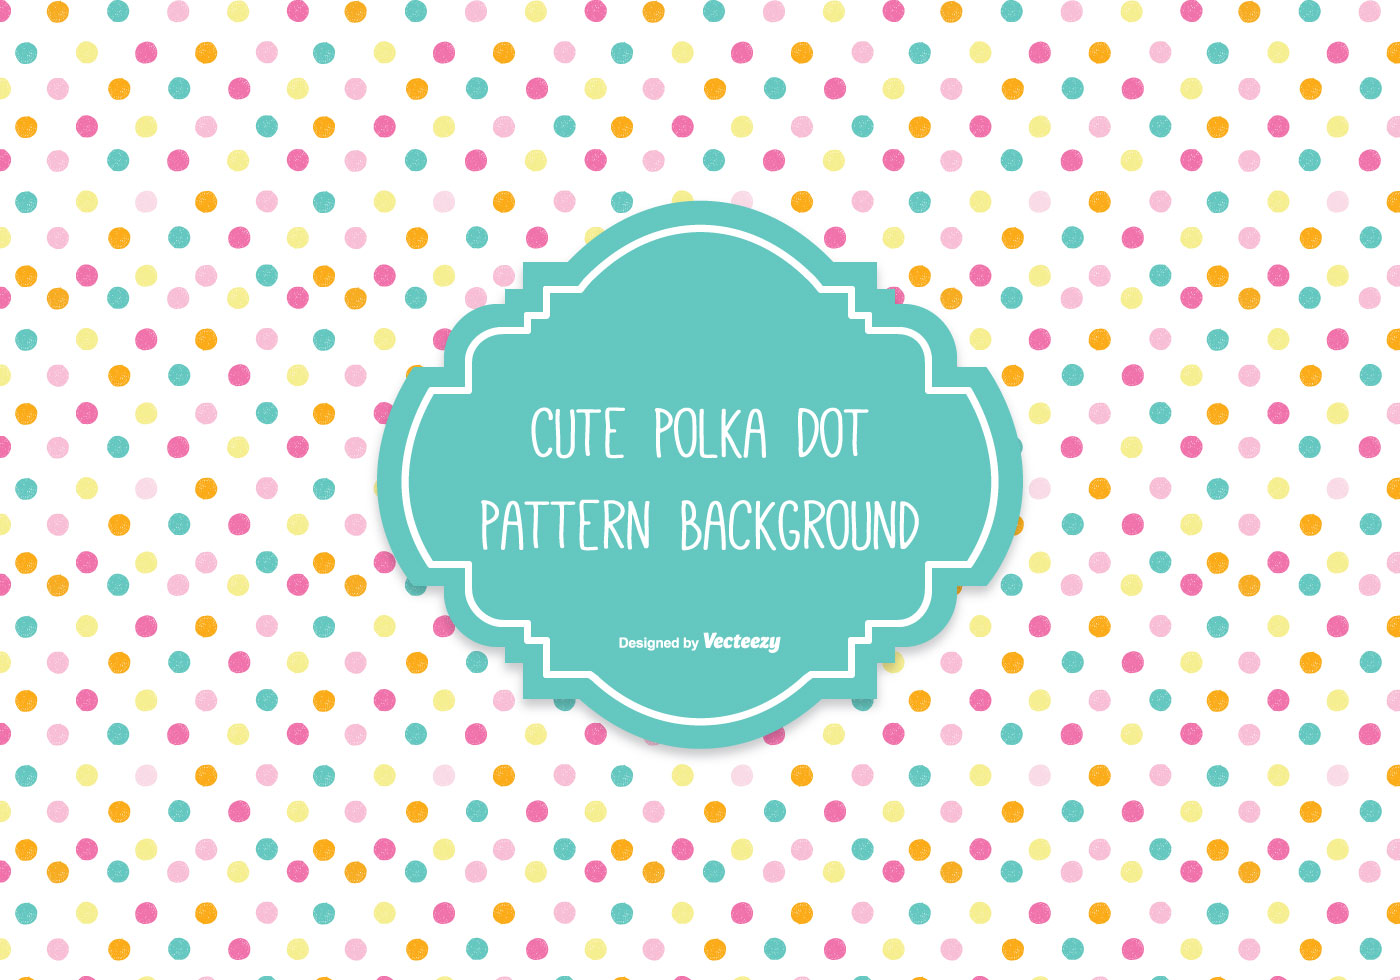 Colorful Polka Dot Background - Download Free Vectors ...